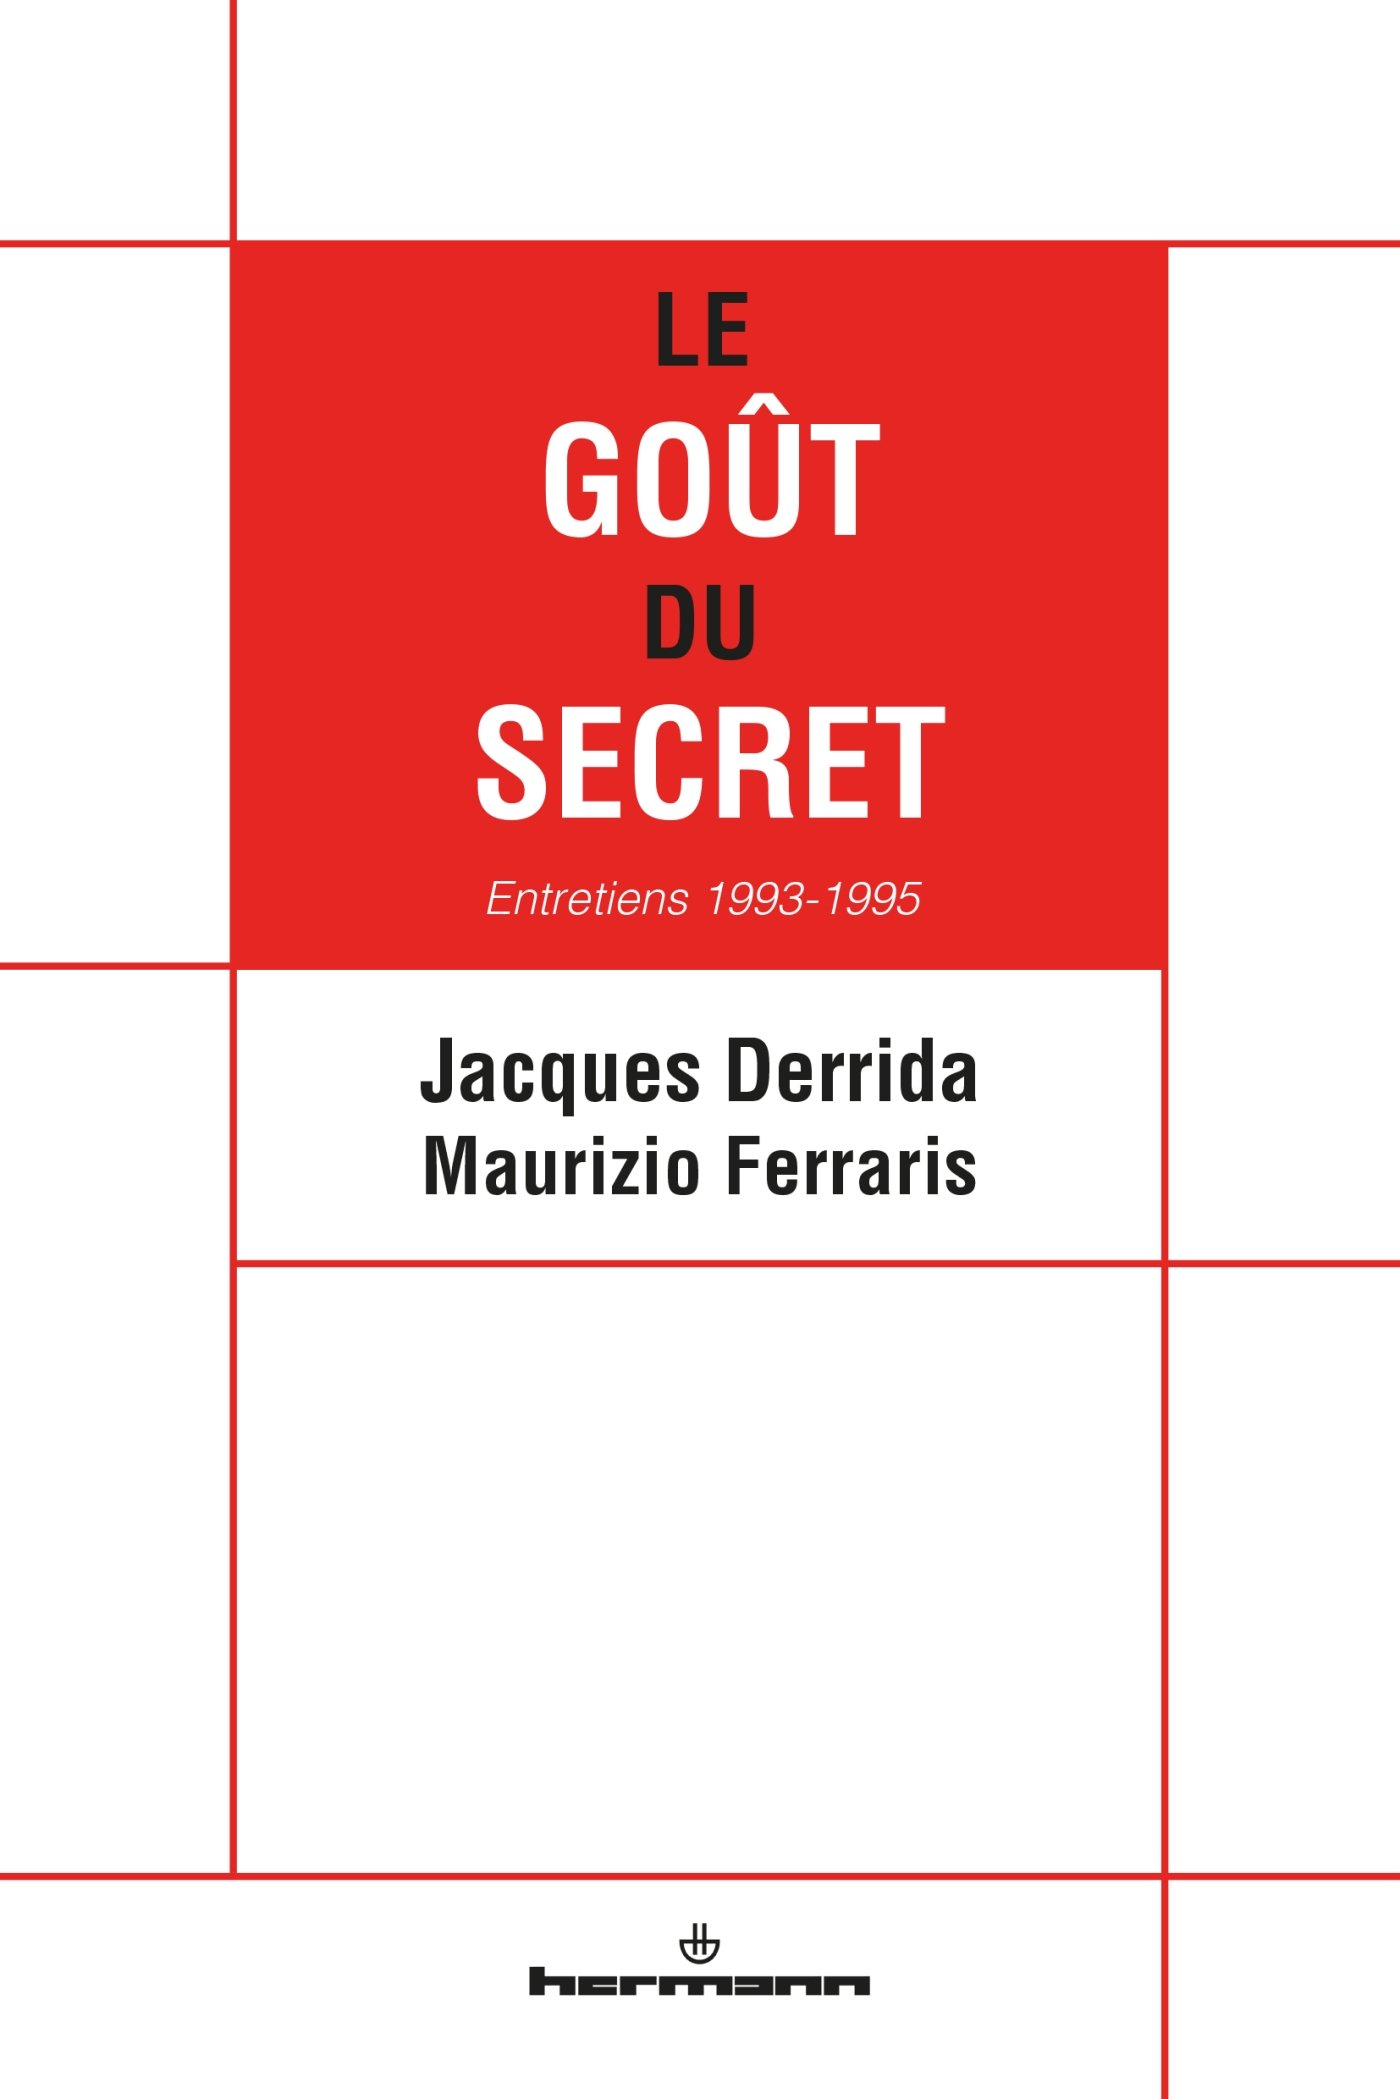 Le goût du secret cover